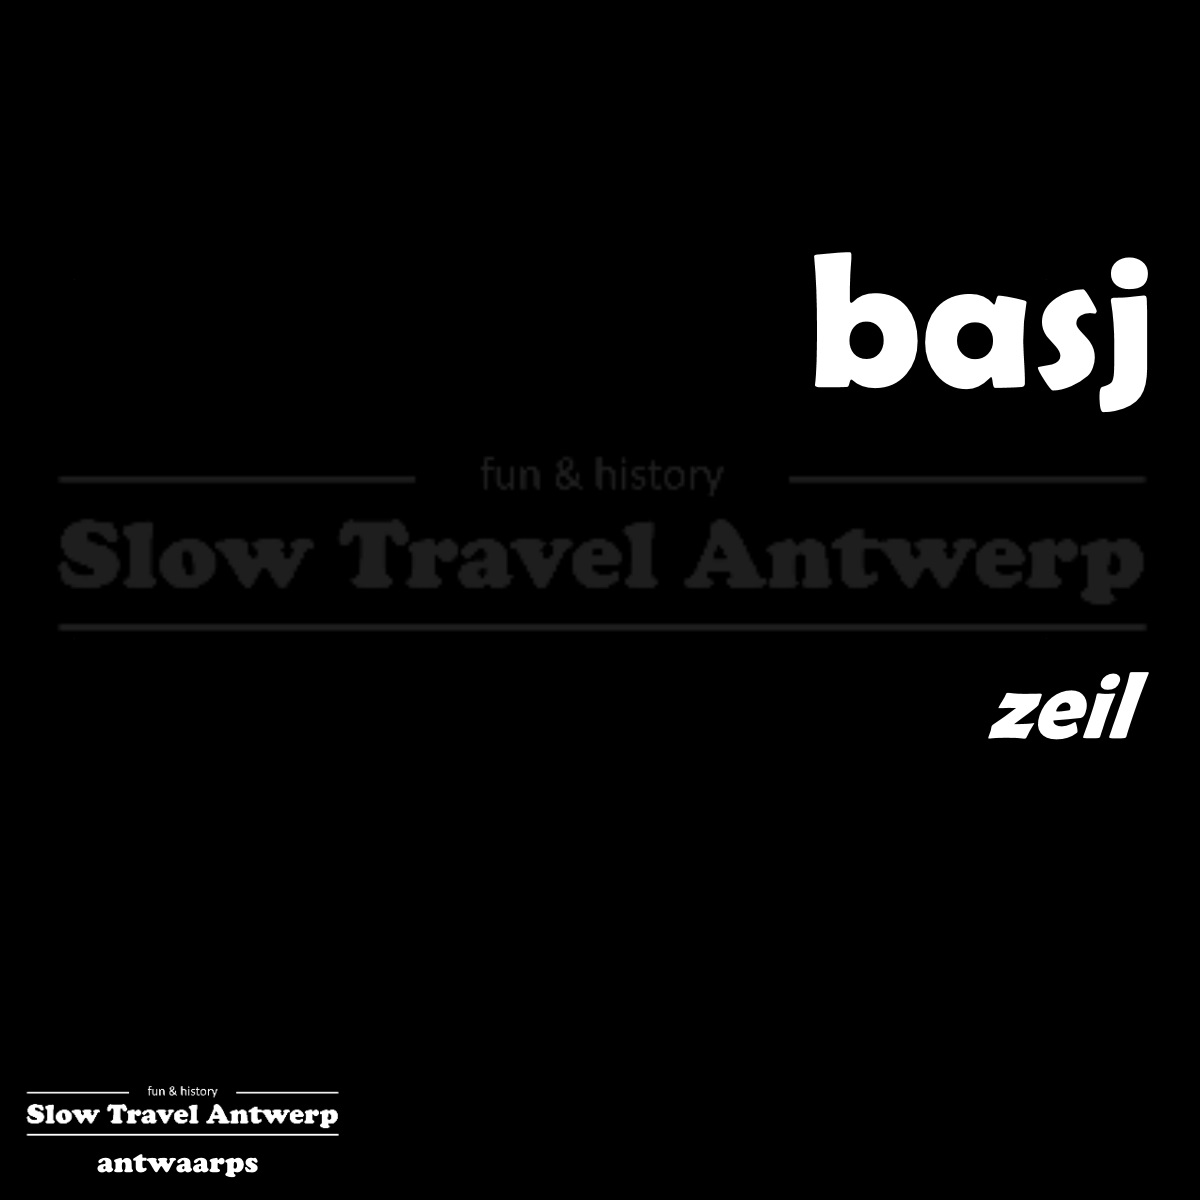 basj – zeil – canvas